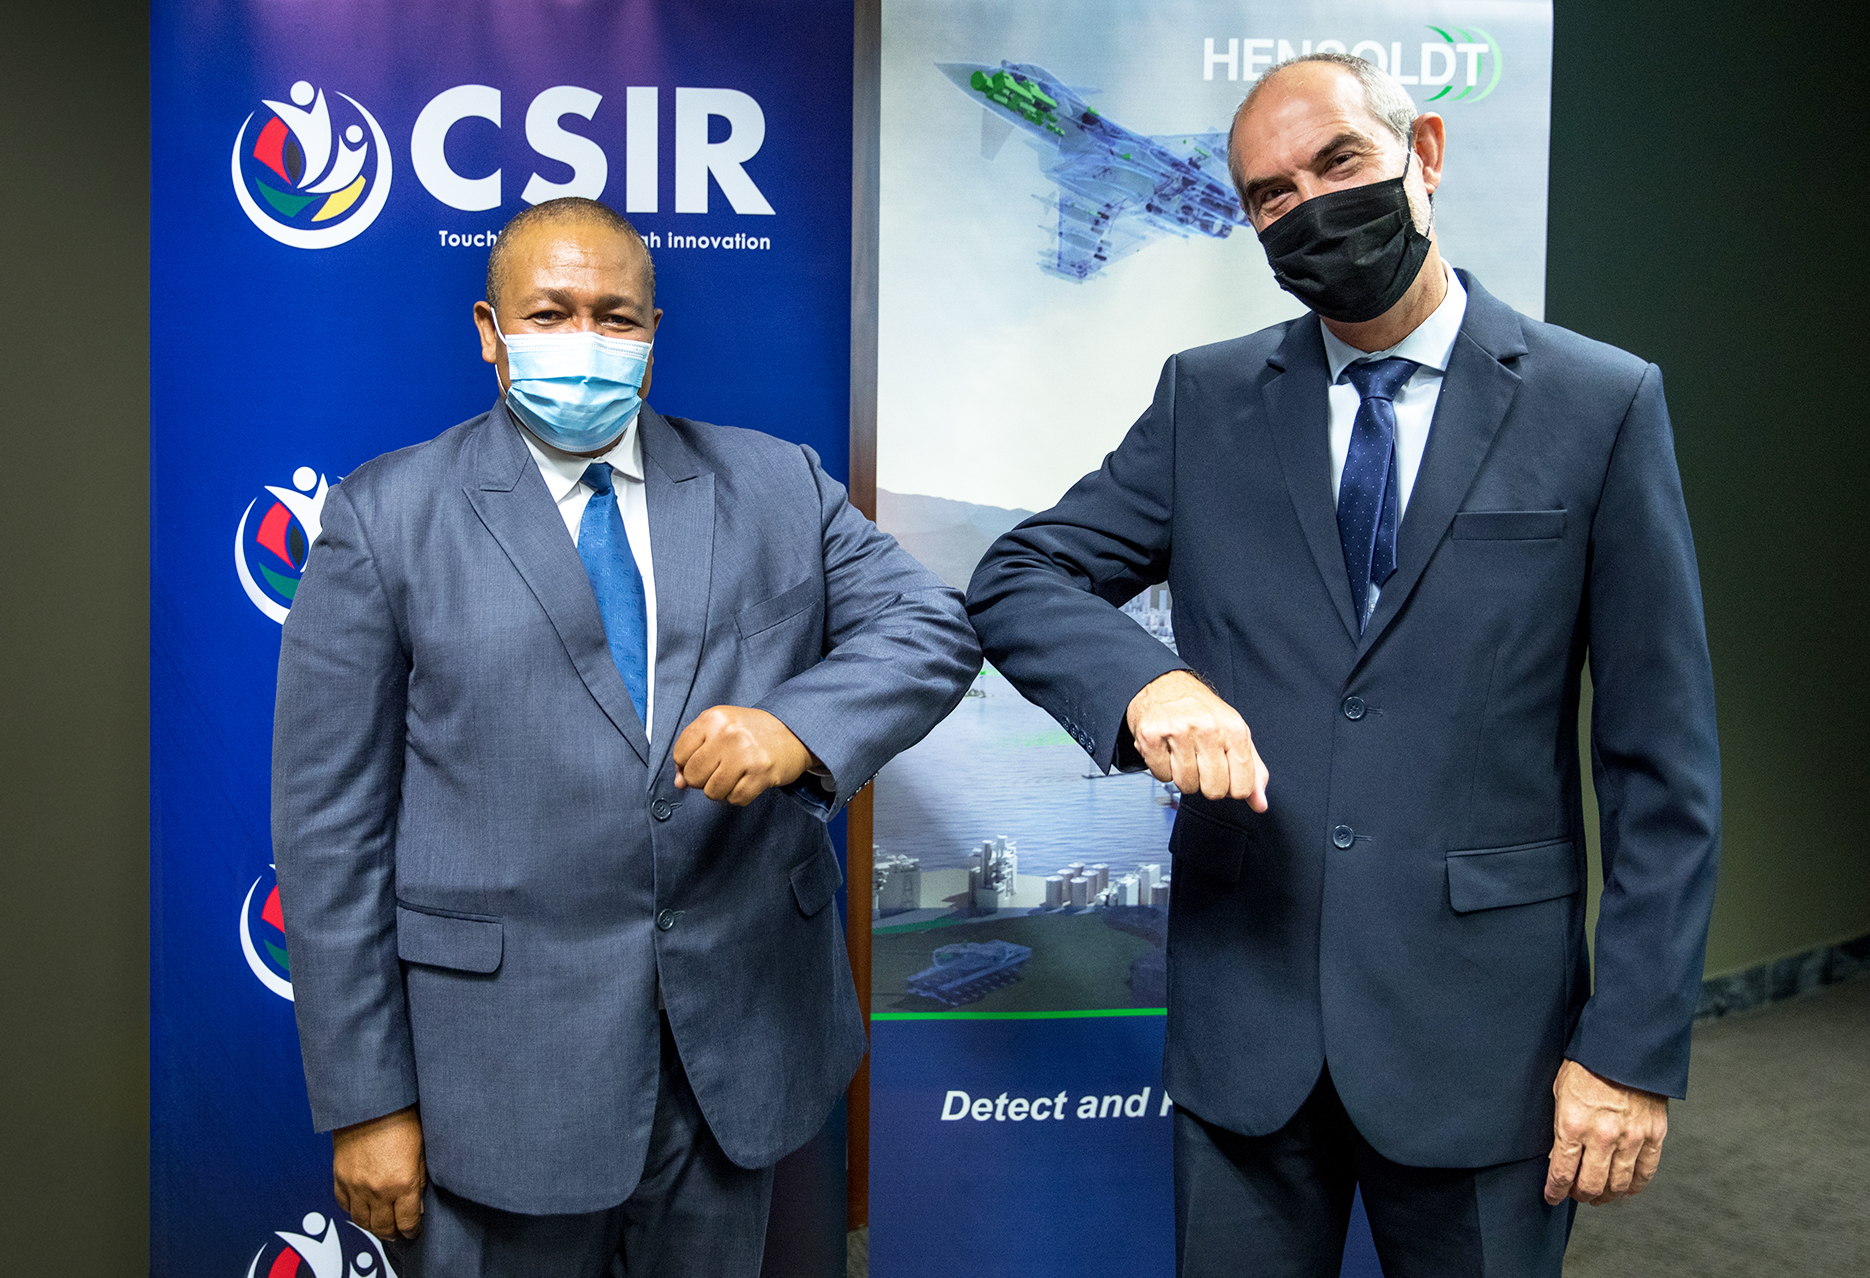 HENSOLDT South Africa and CSIR sign agreements for new radar development